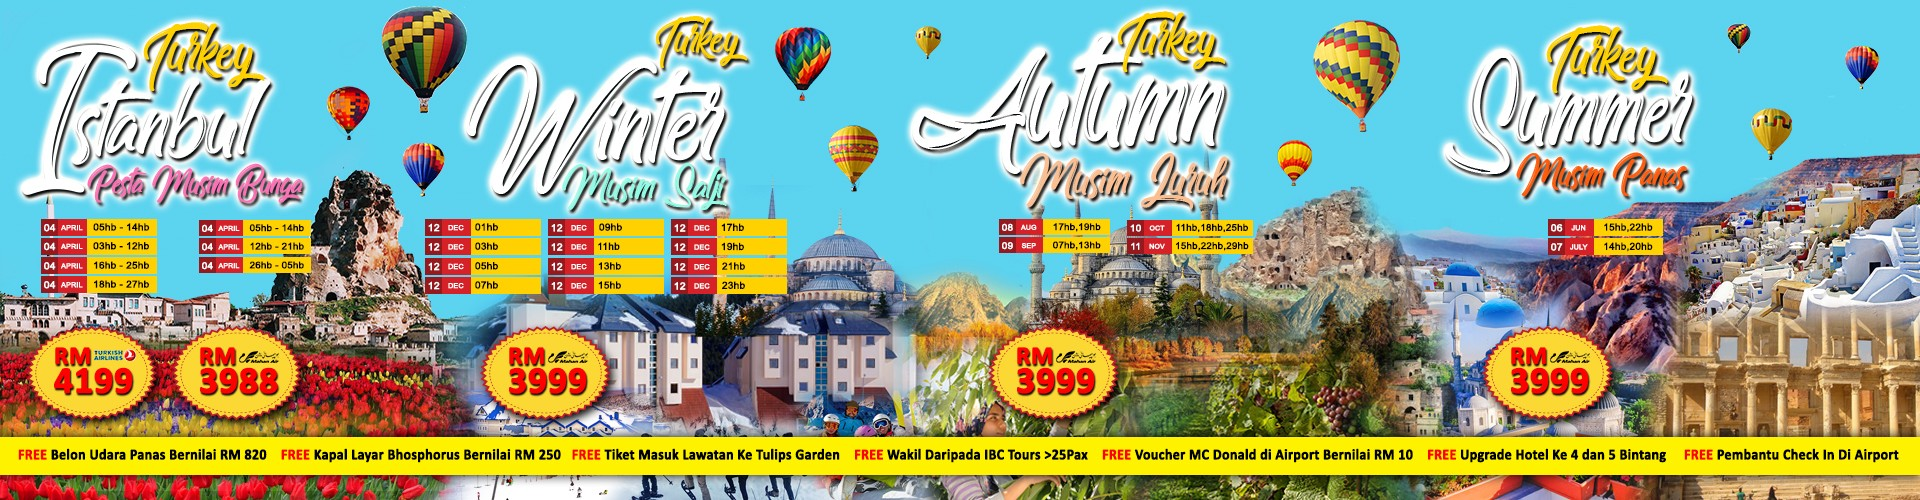 Turkey 2018 Promotion Banner